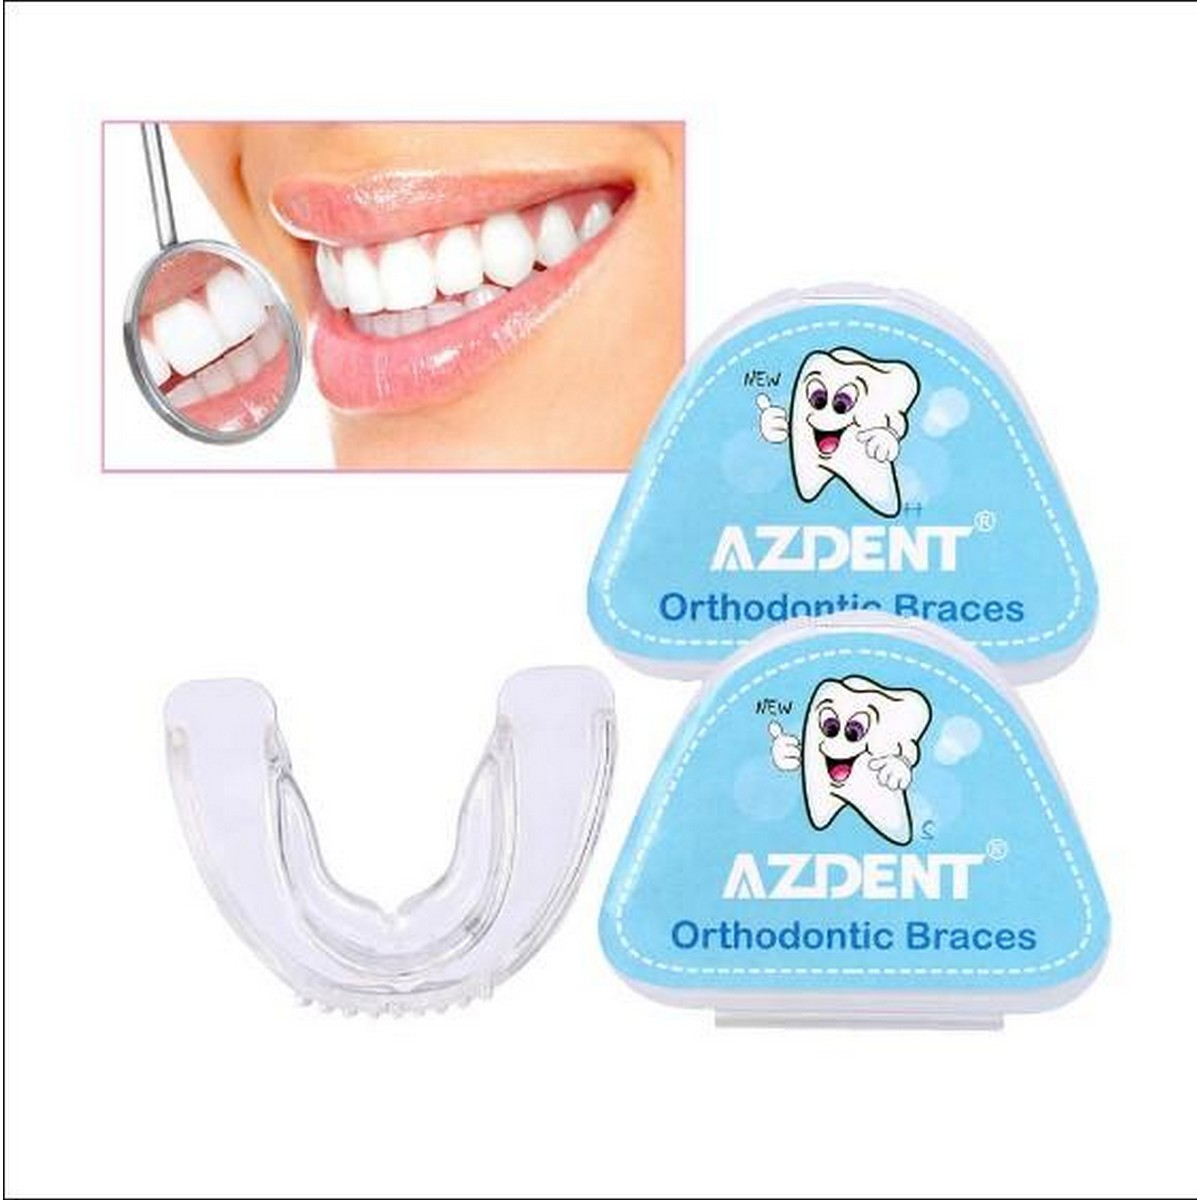 Hard(2nd stage)  Tooth Orthodontic Braces Appliance Dental Braces Silicone Alignment Trainer Teeth Retainer Oral Hygiene Teeth Alignment